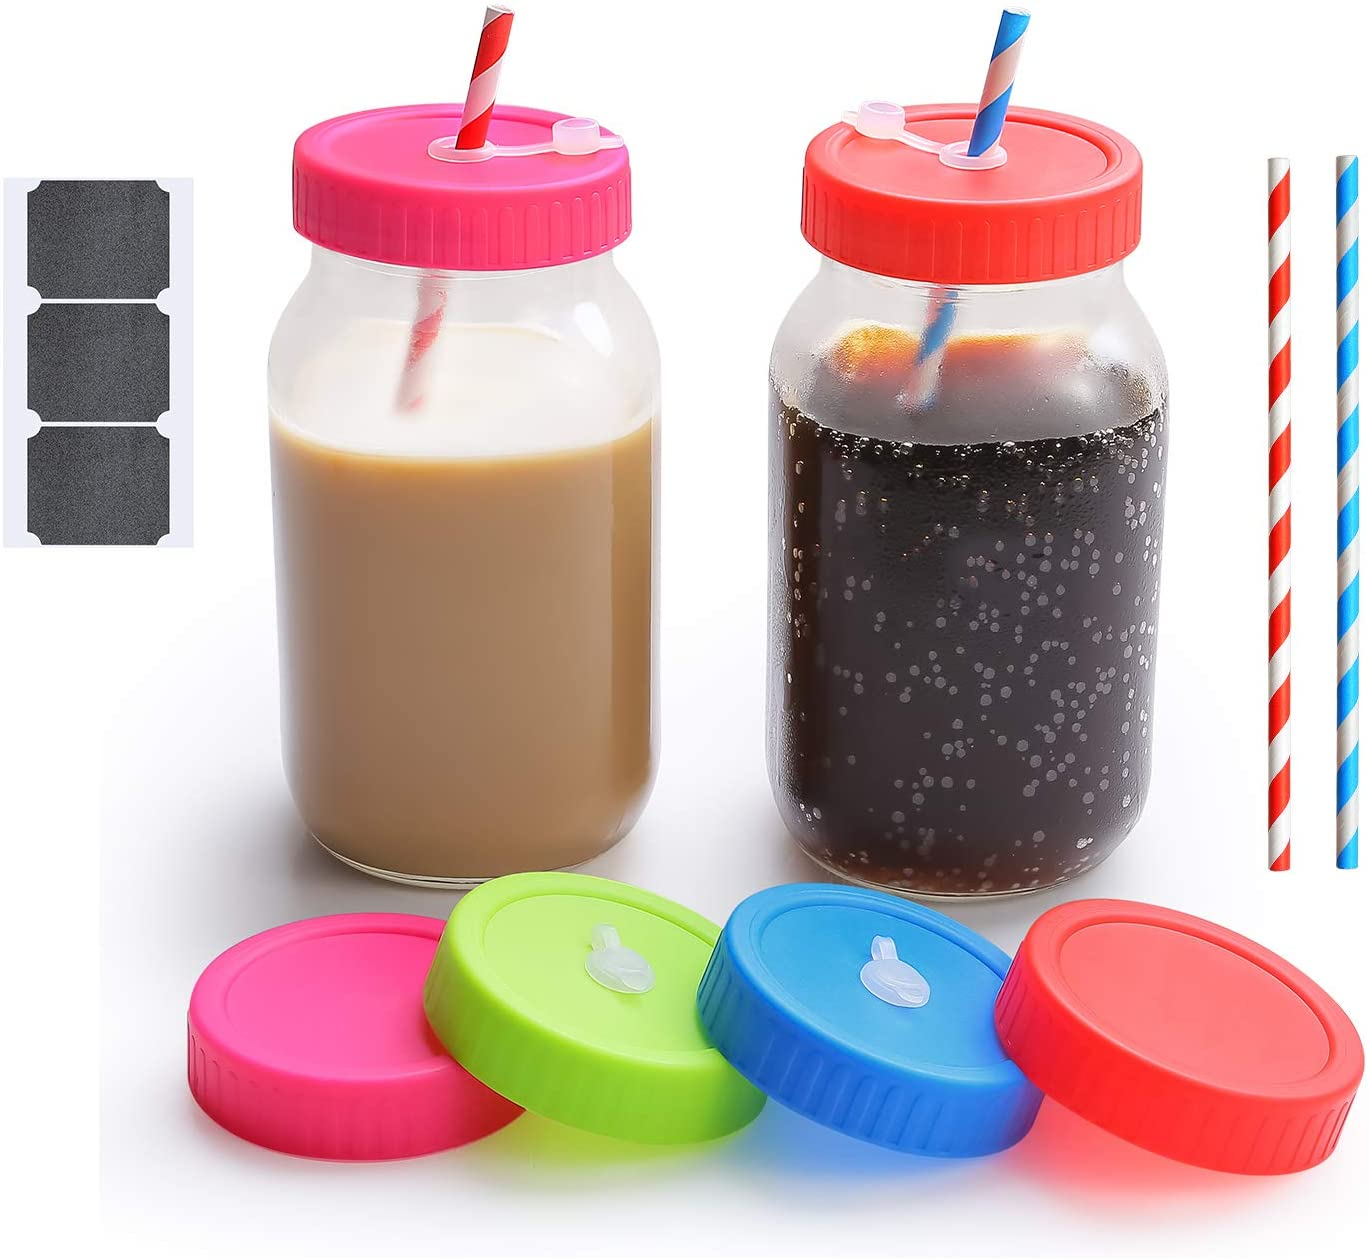 CONNYAM 2pcs 24 Oz Regular Mouth Mason Jars with Lids, 12 pcs Disposable Straws, 4pcs Drinking Lids with Straw Hole & 2pcs Leak-proof Lids Seal Storage